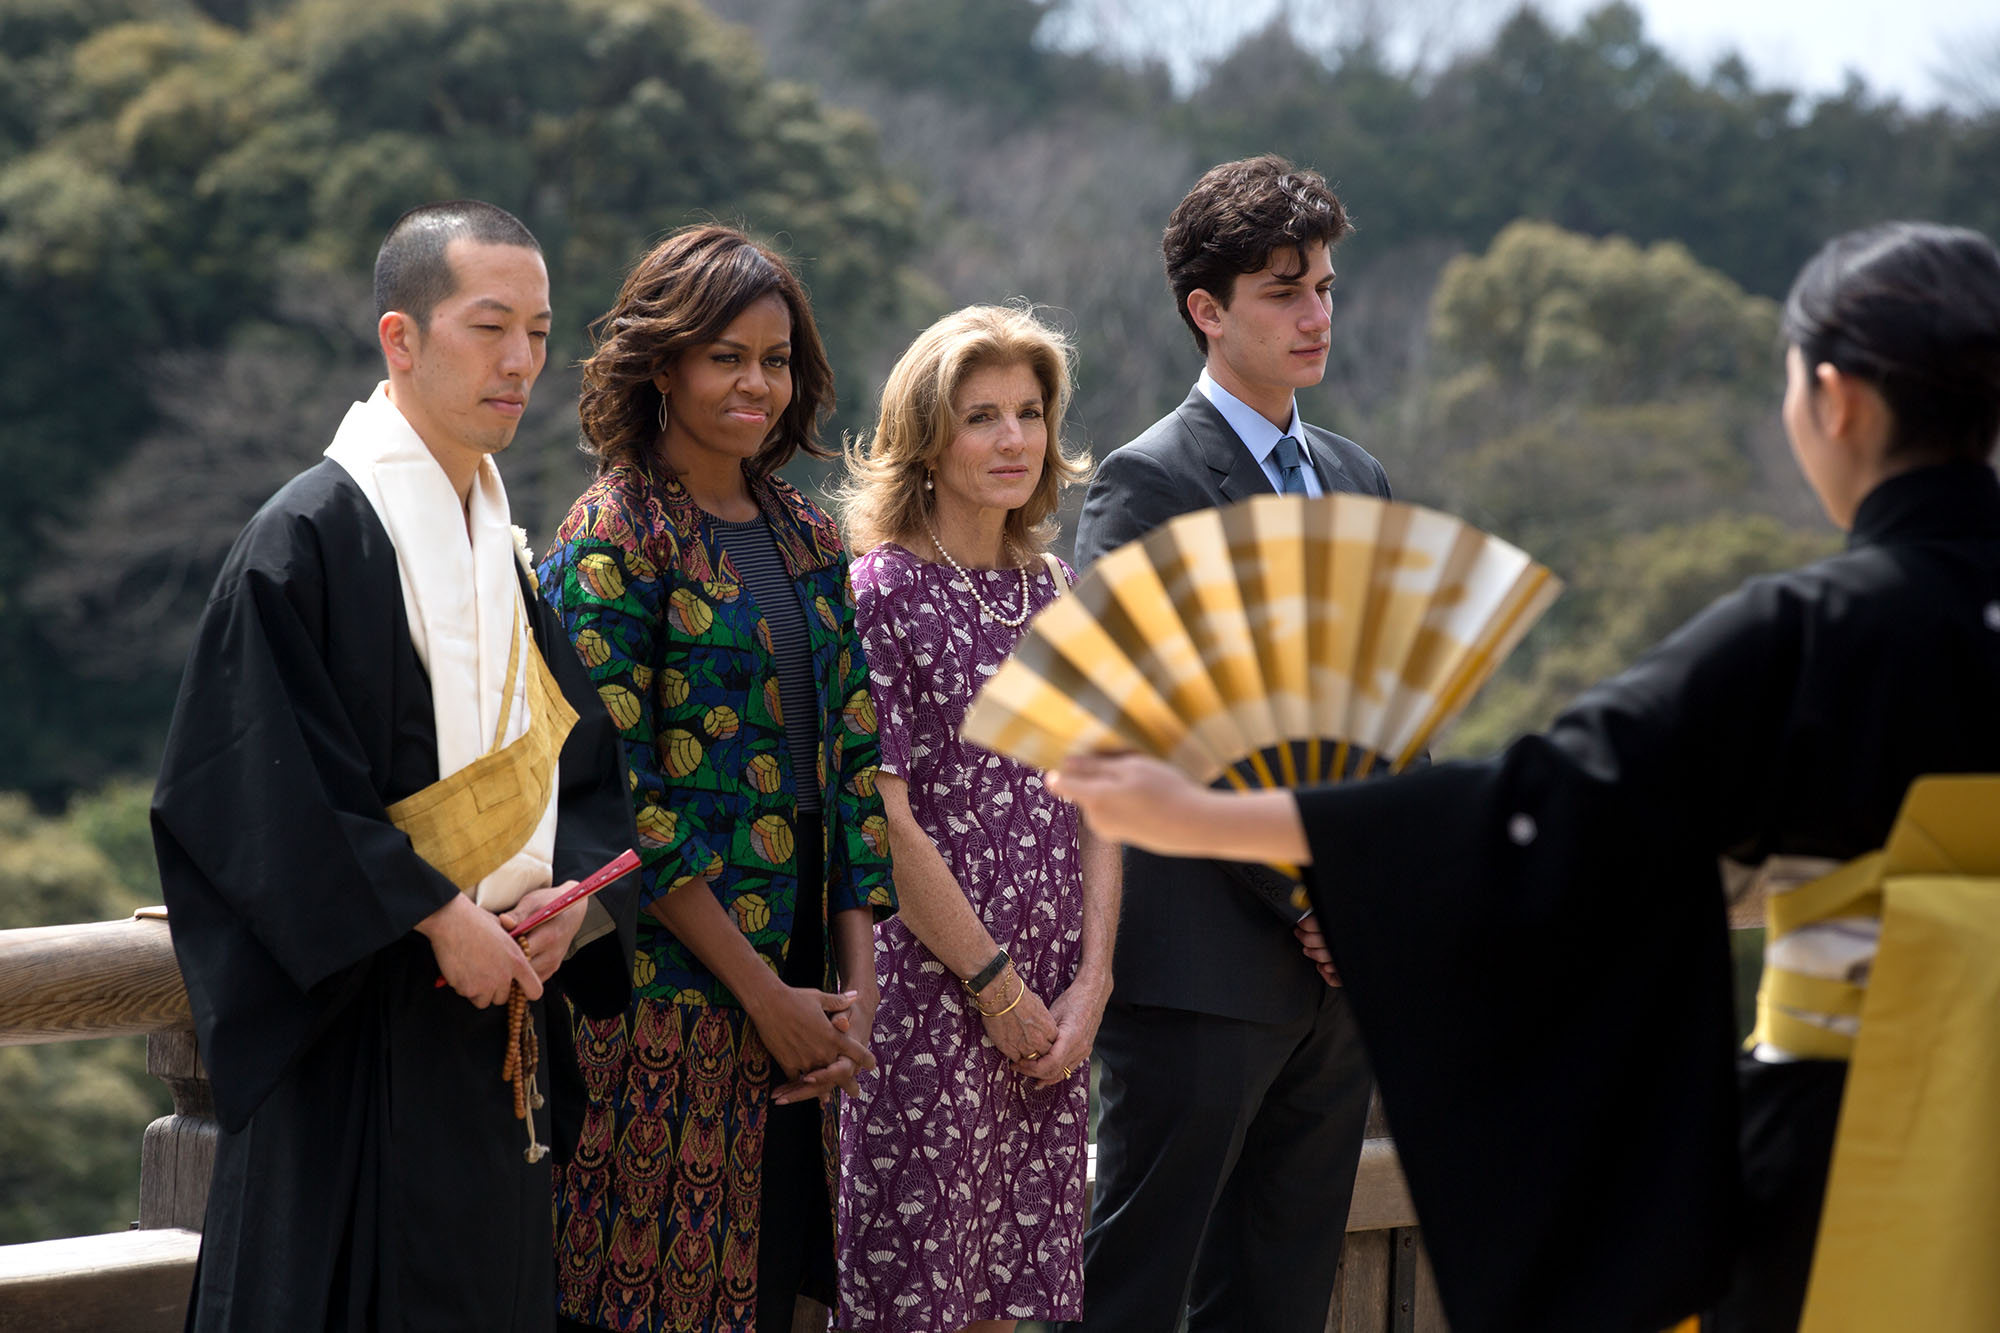 First Lady Michelle Obama, Eigen Onishi, Amb. Caroline Kennedy and Jack Schlossberg watch Noh dancers perform. (Official White House Photo by Amanda Lucidon)